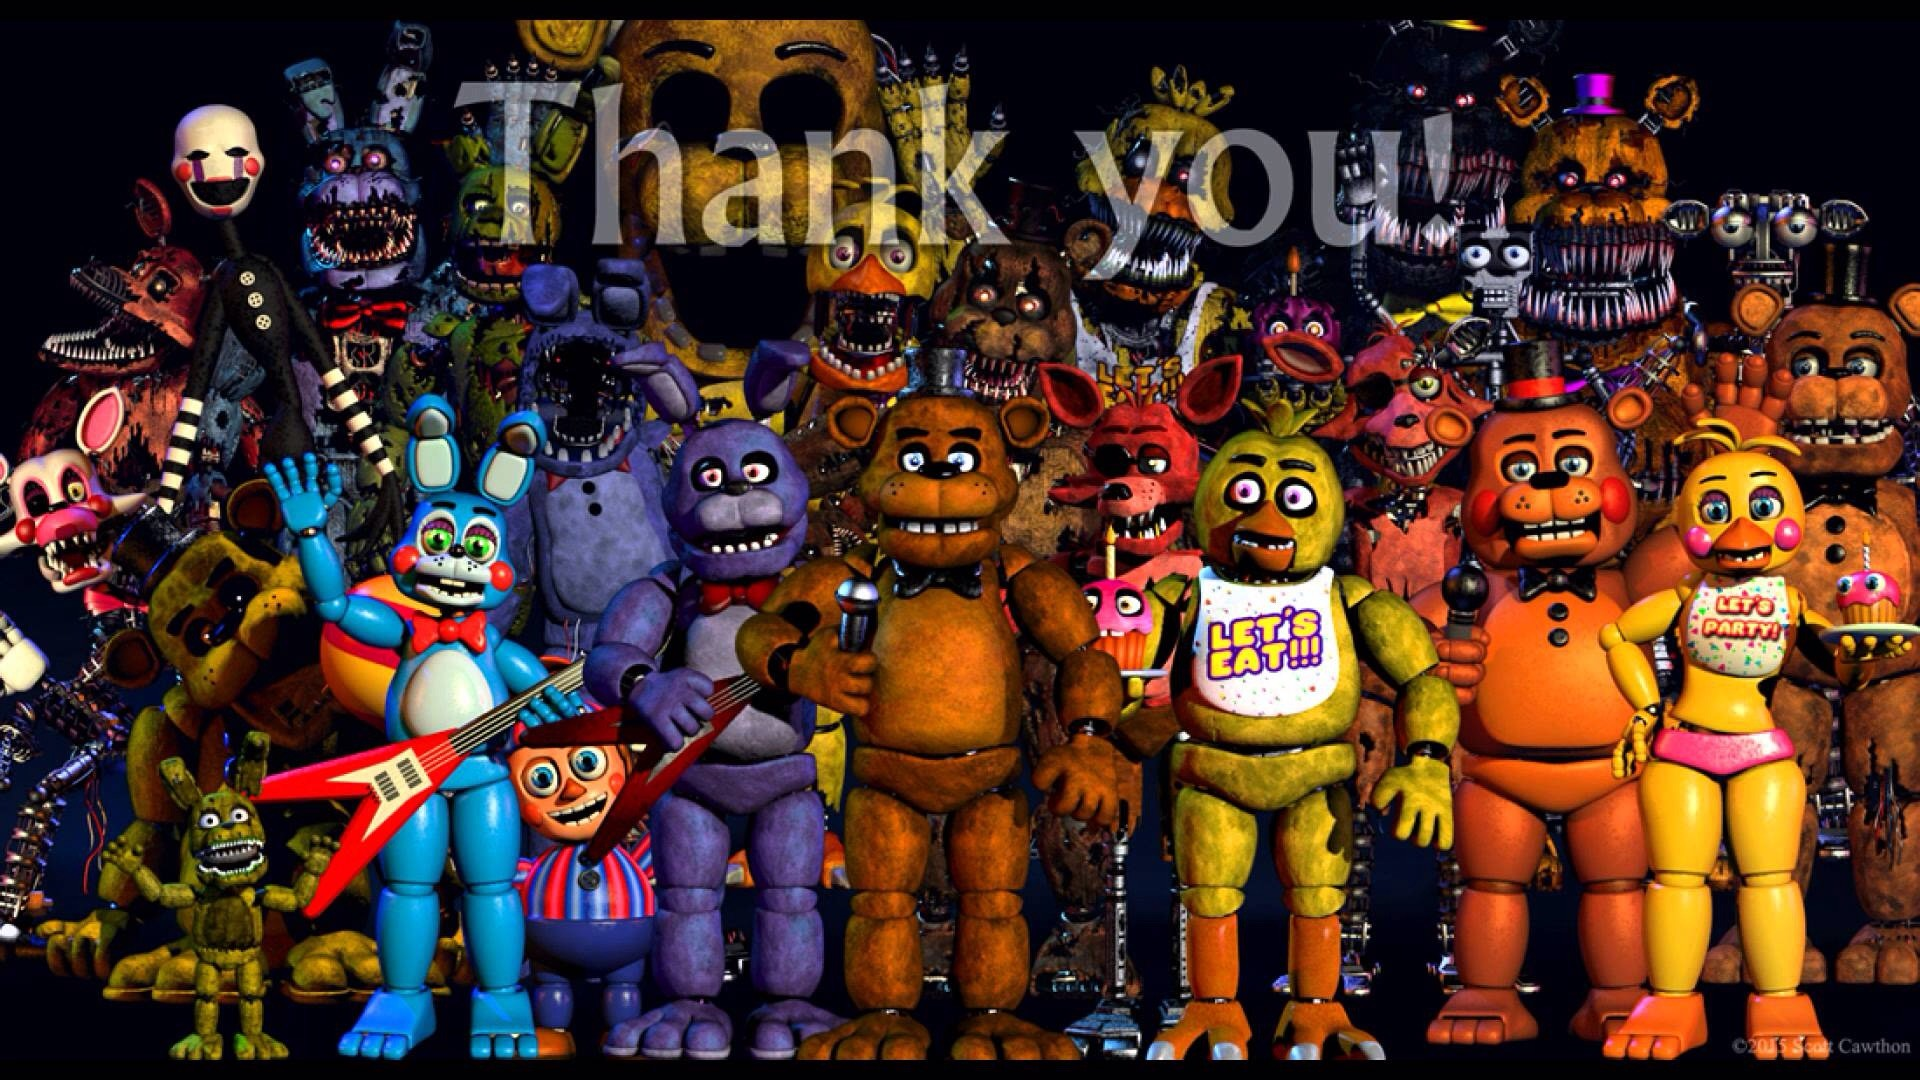 """Res: 1920x1080, In early August 2015, Scott put up a """"Thank you!"""" Image on his website."""